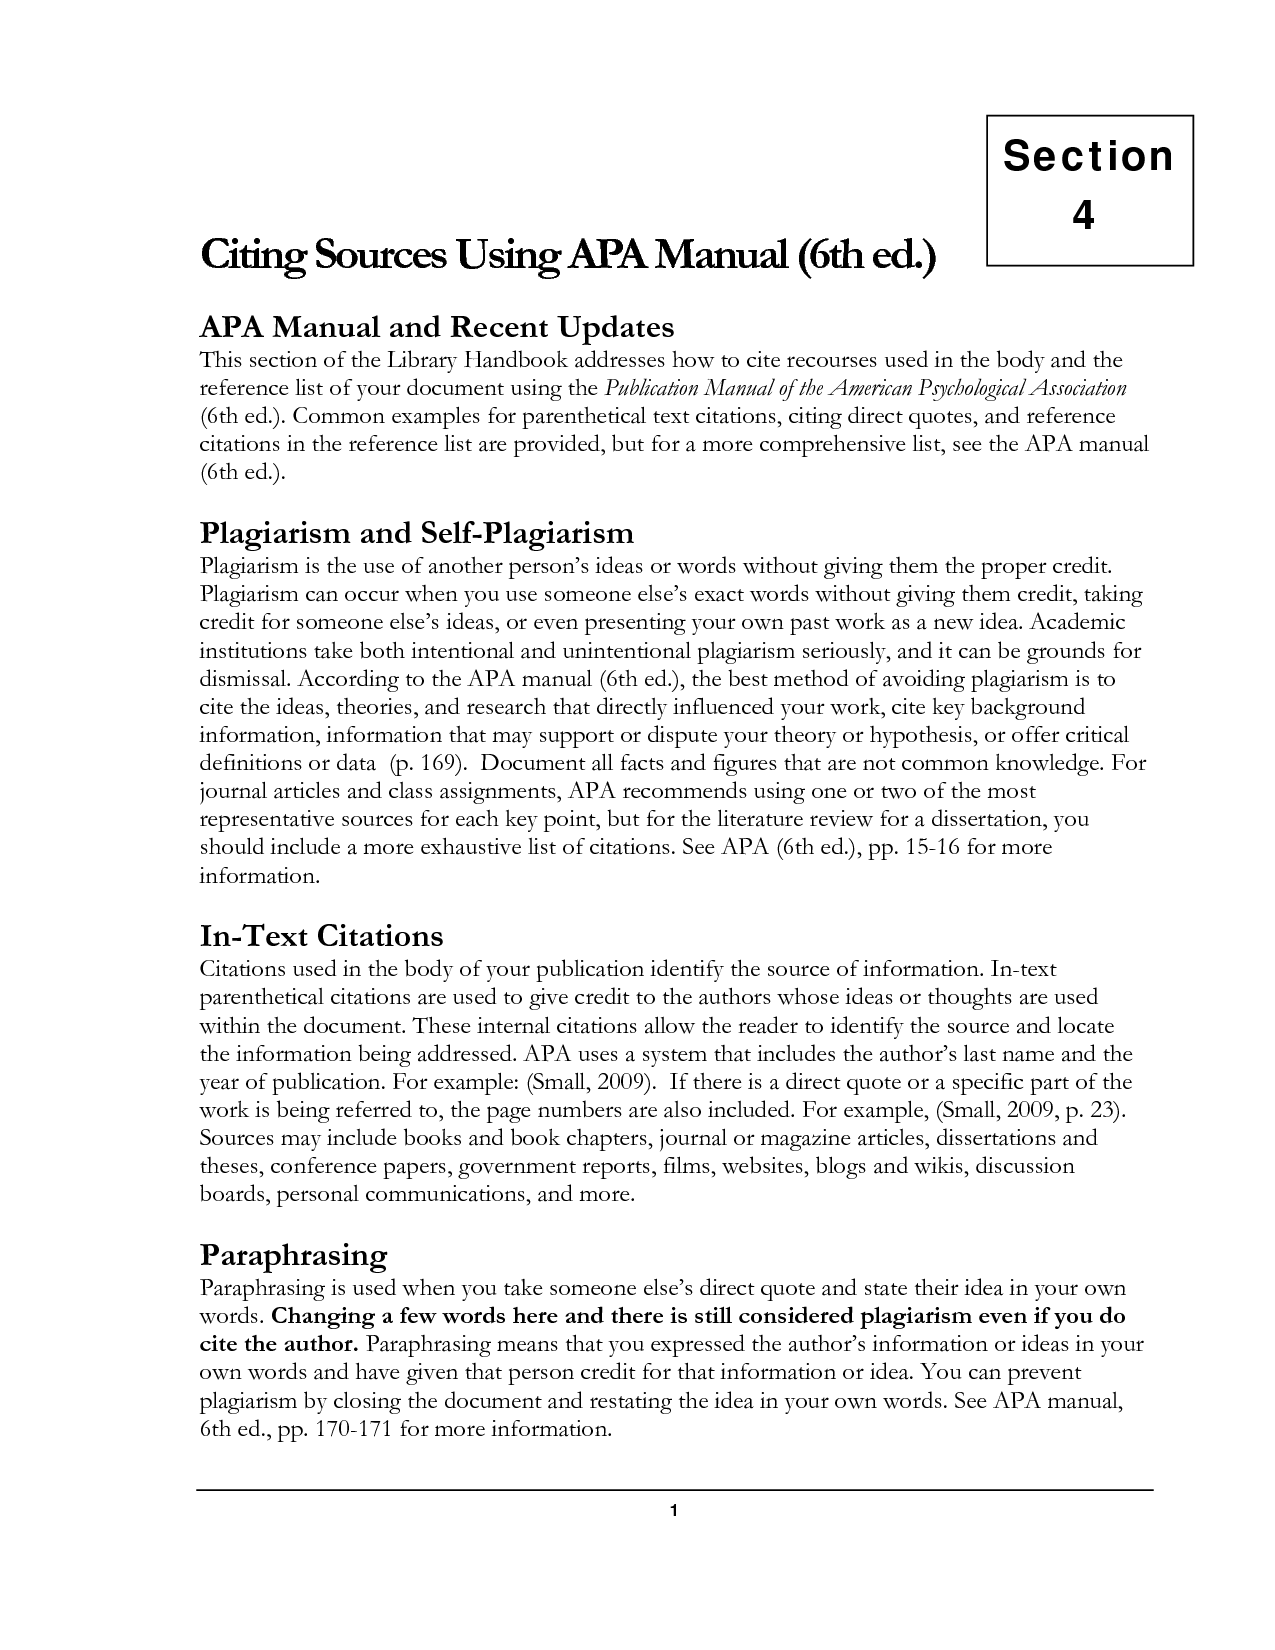 Writing a dissertation proposal 6th edition